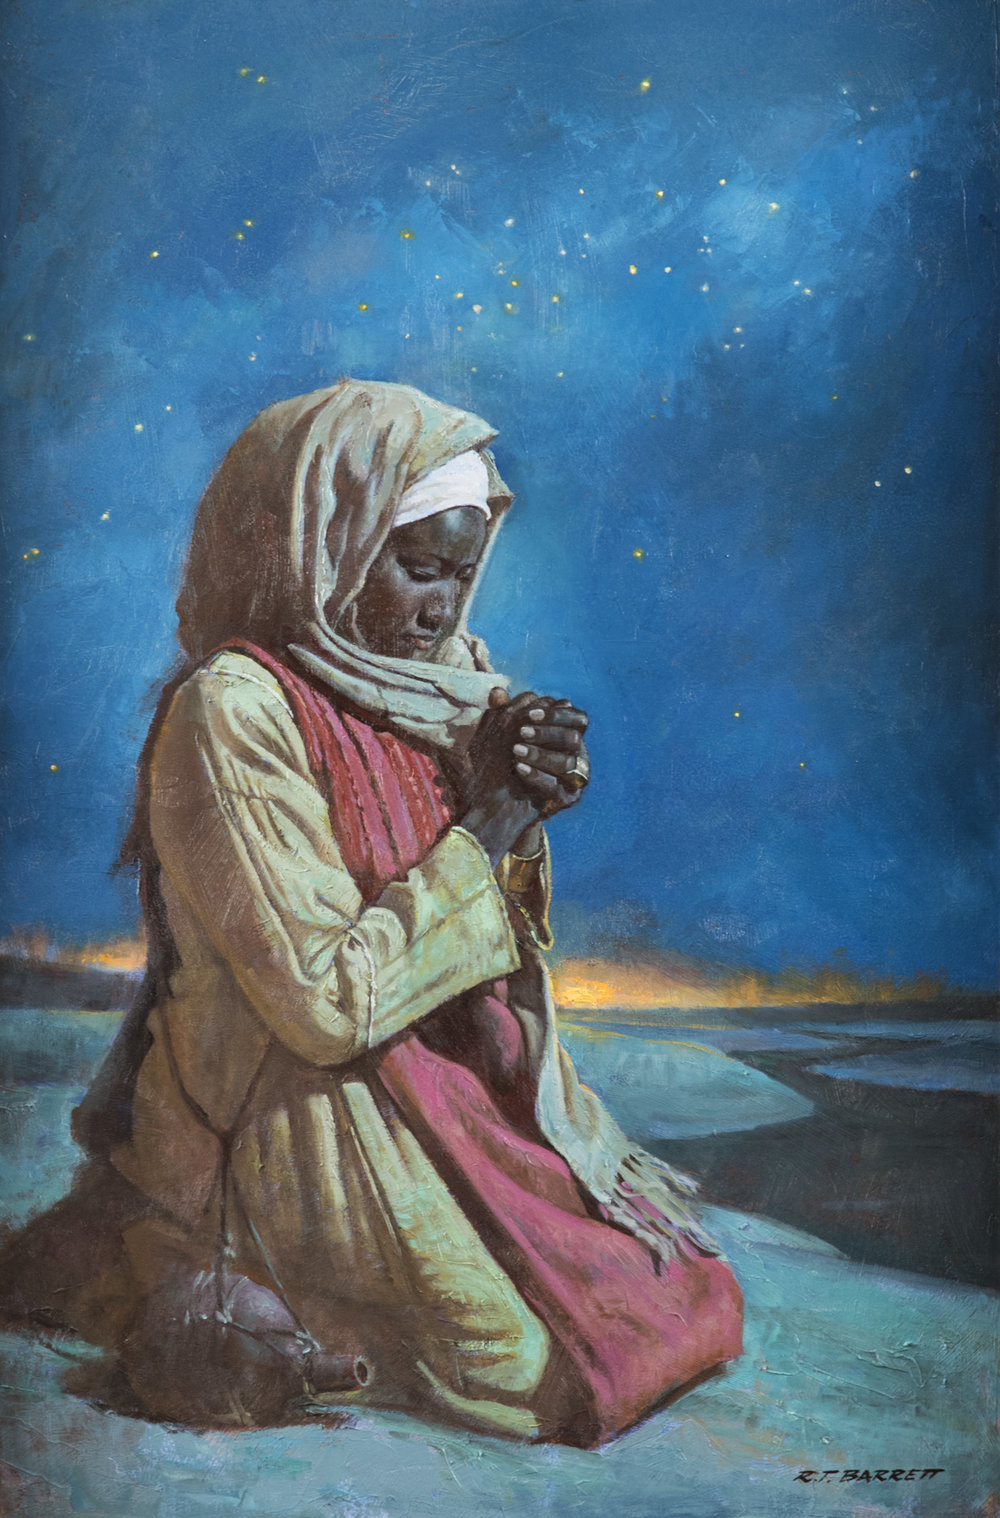 He'll Hear My Prayer by Robert T. Barrett. Oil on Linen. 36 x 24 in.